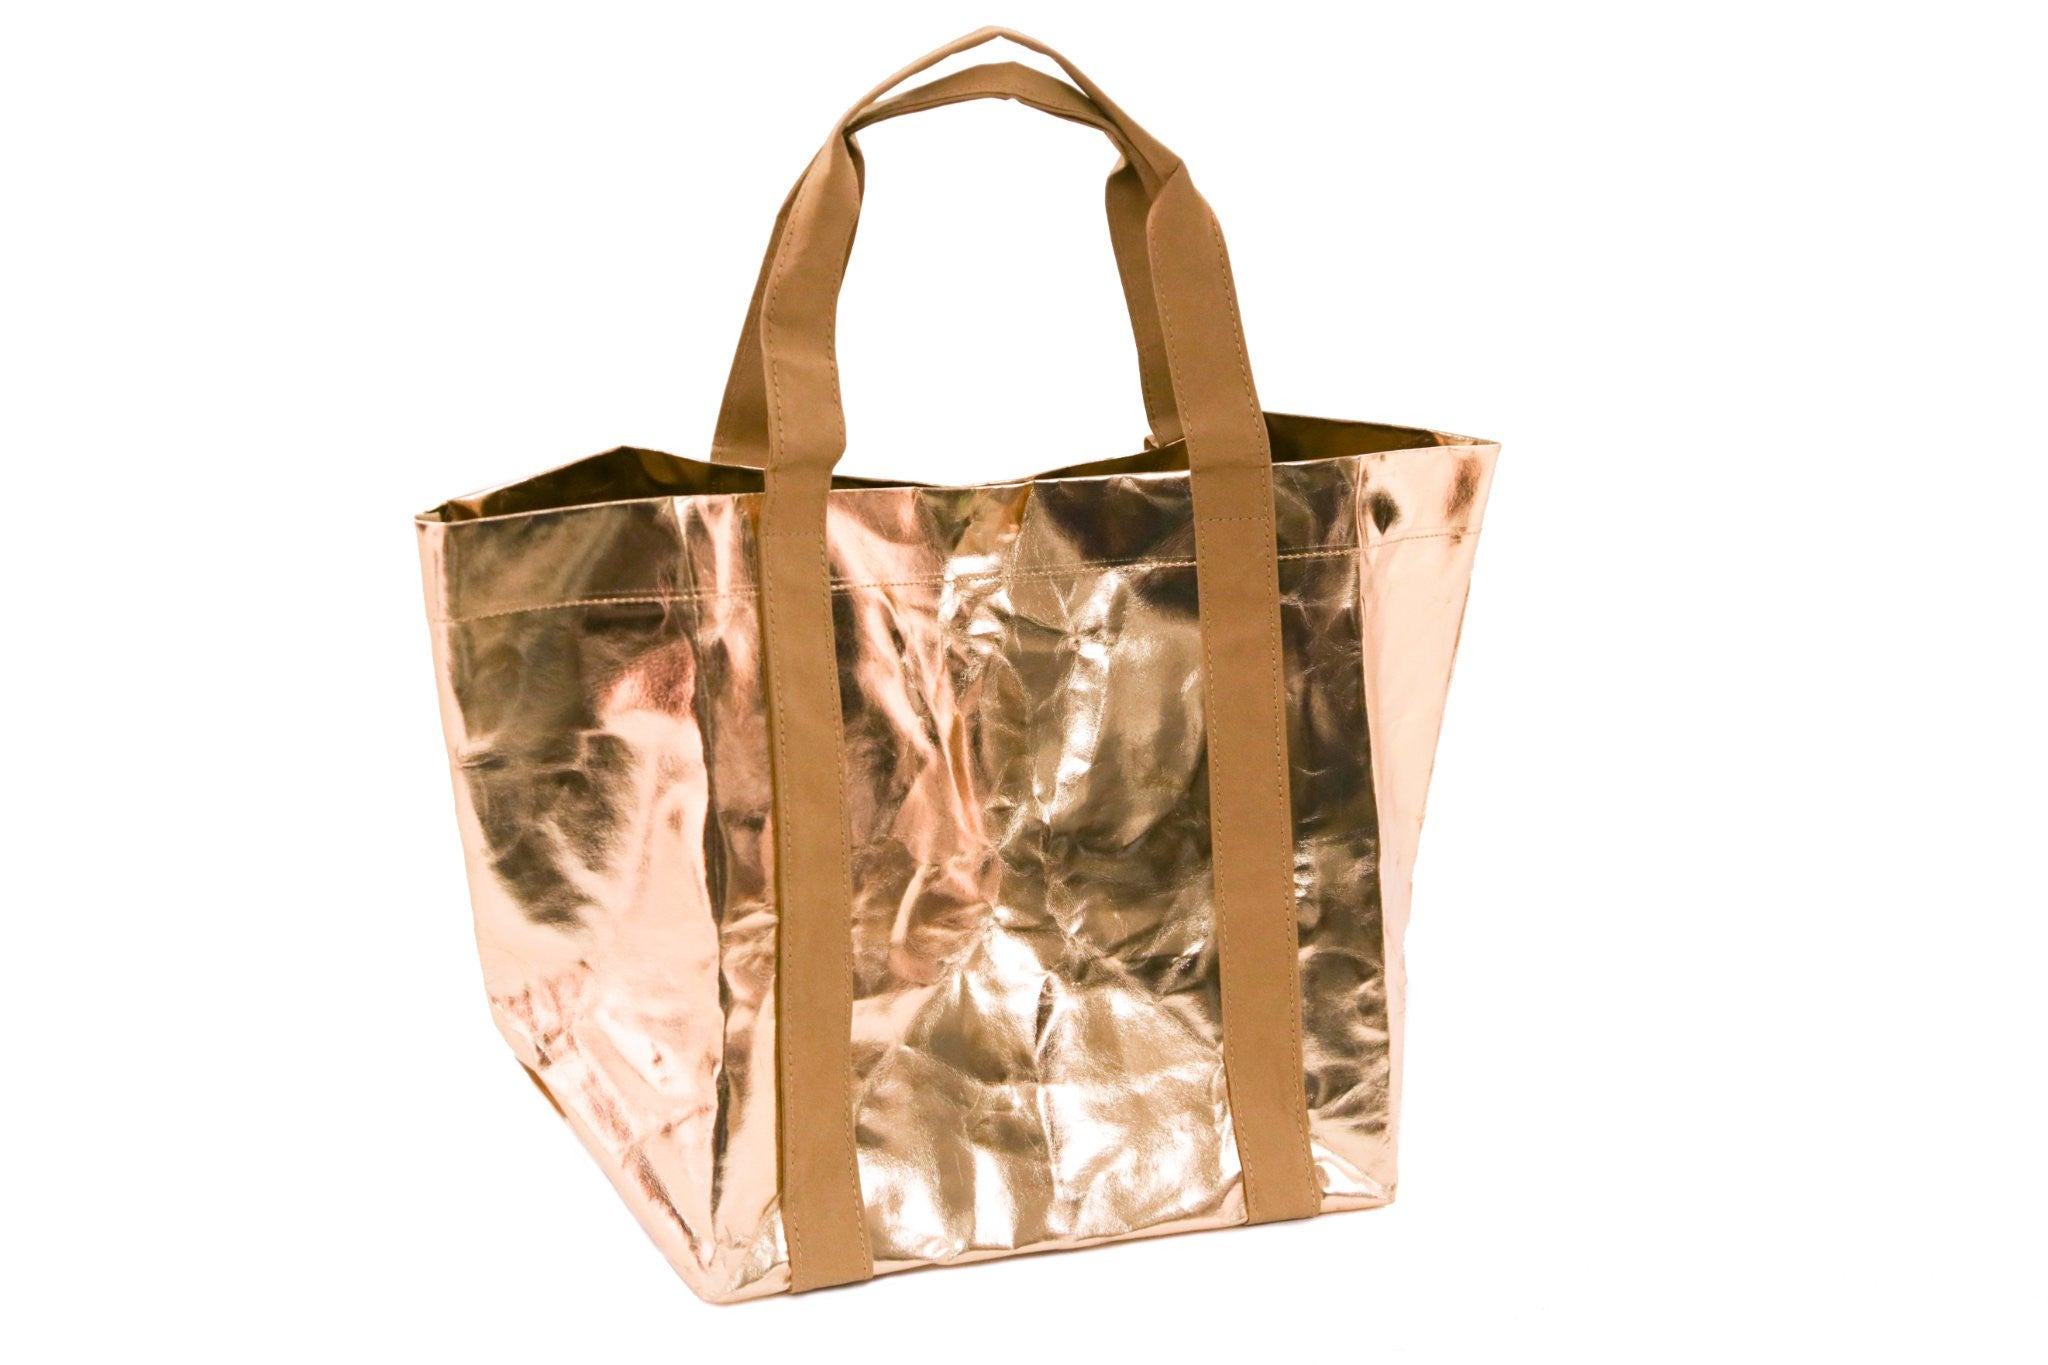 My Paper Tote washable paper bag in Rose Gold. FSC certified and environmentally friendly. Perfect vegan, sustainable bag and gift.